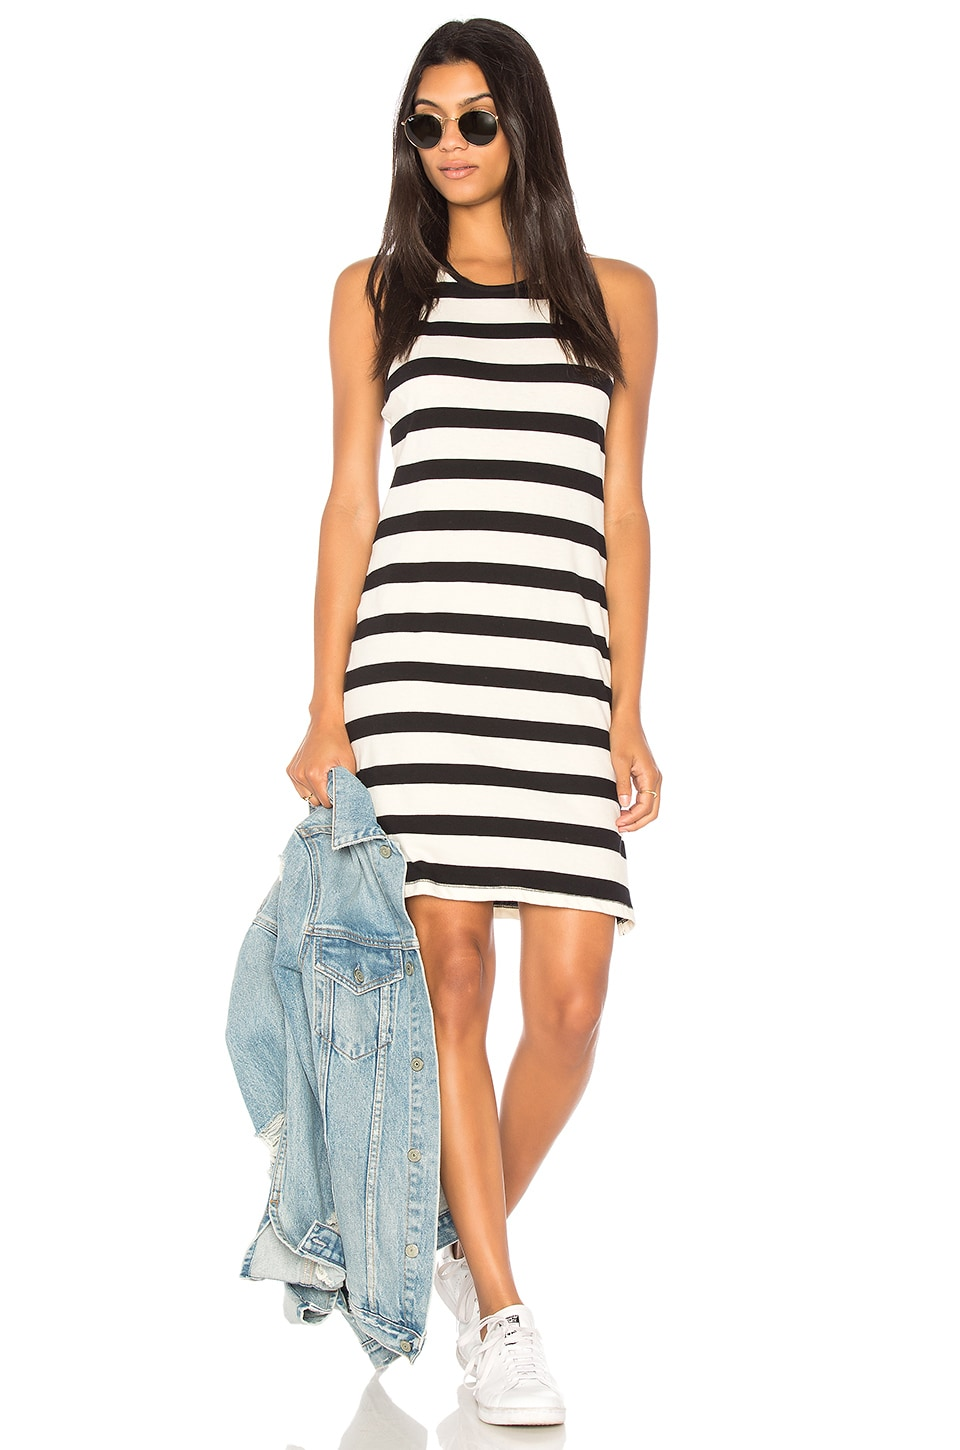 Splendid Seaboard Stripe Racerback Dress in Black & Cream